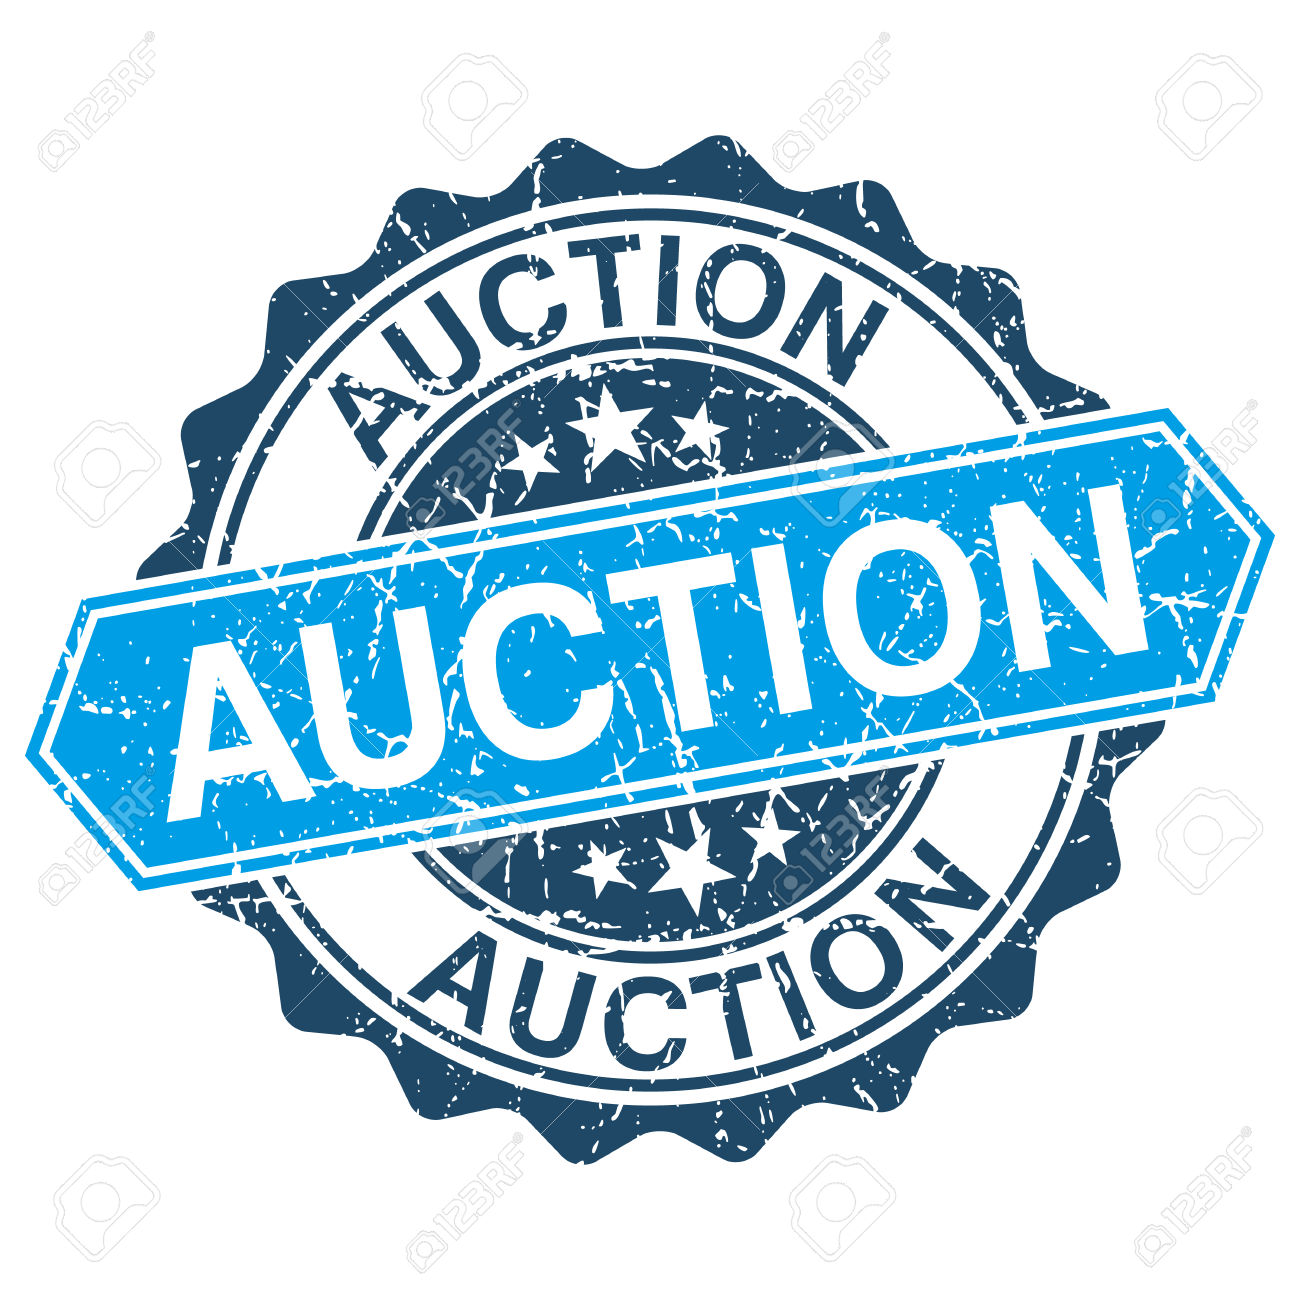 Free Auction Clipart.